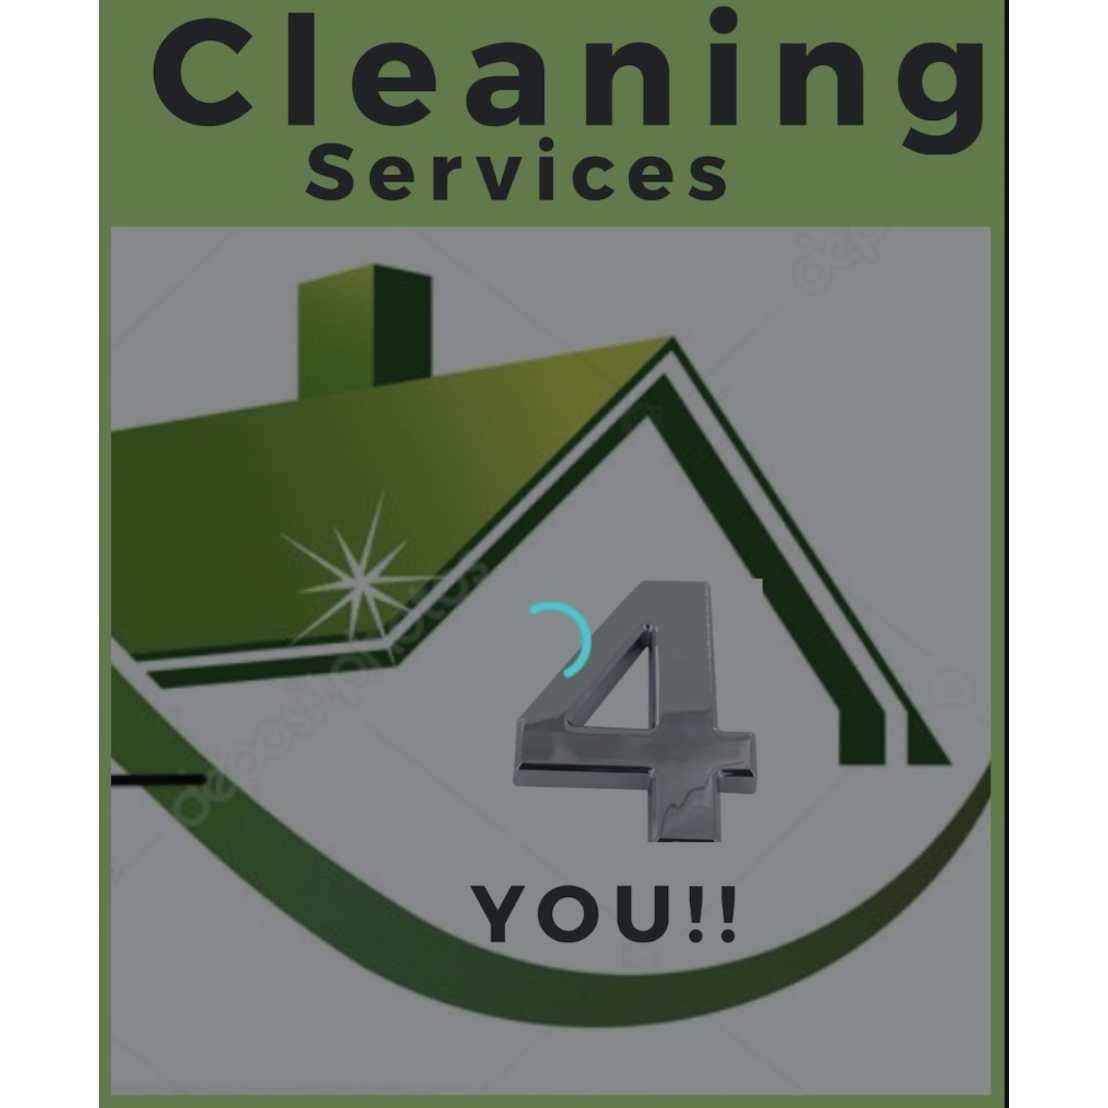 Cleaning Services 4 you